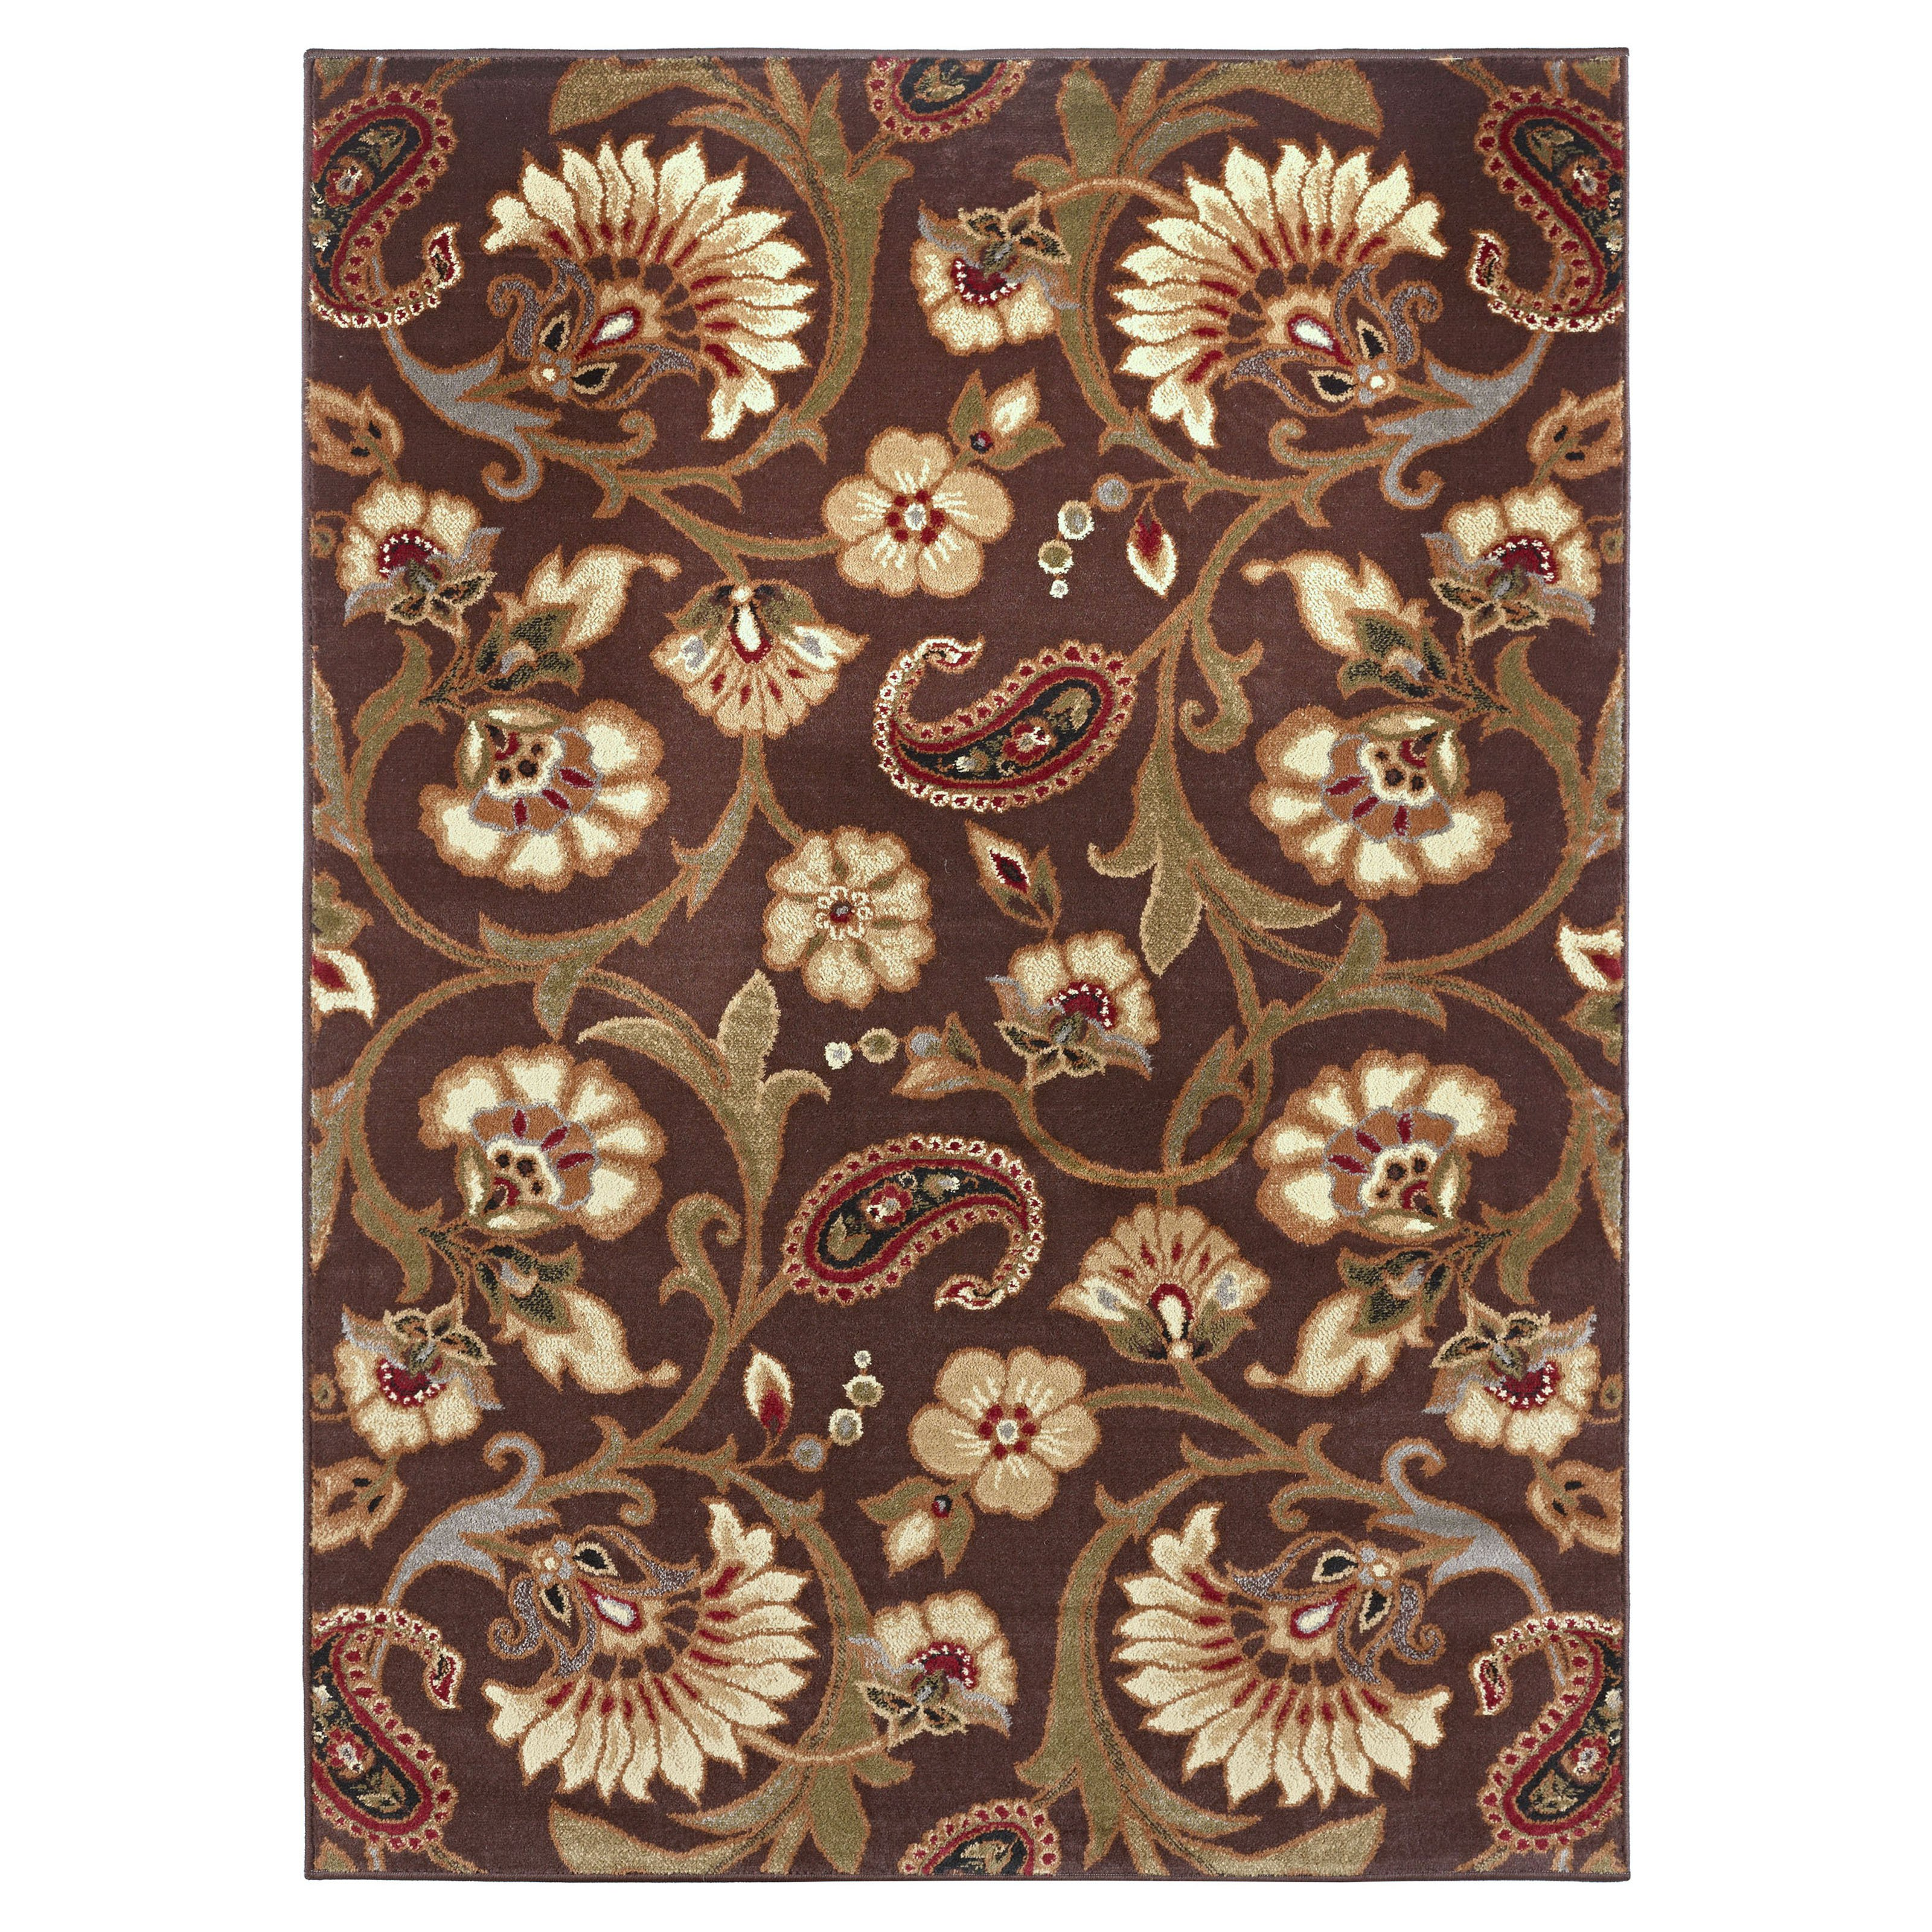 Rectangular Rug in Brown (7 ft. L x 5 ft. W (13 lbs.))